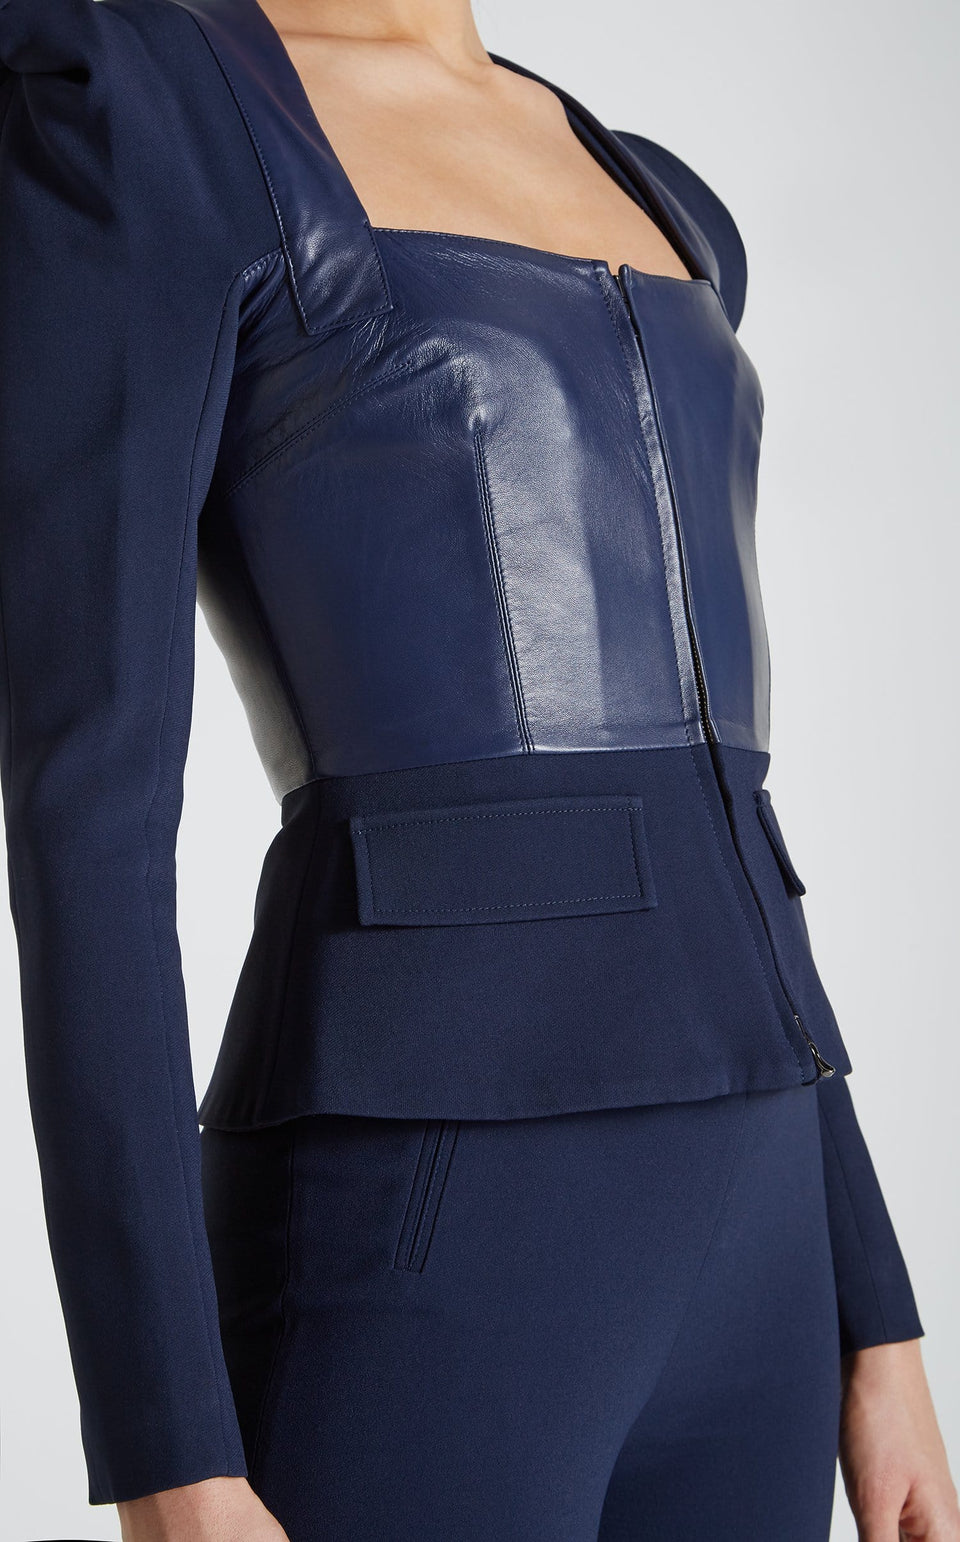 Galaxy Jacket In Navy from Roland Mouret